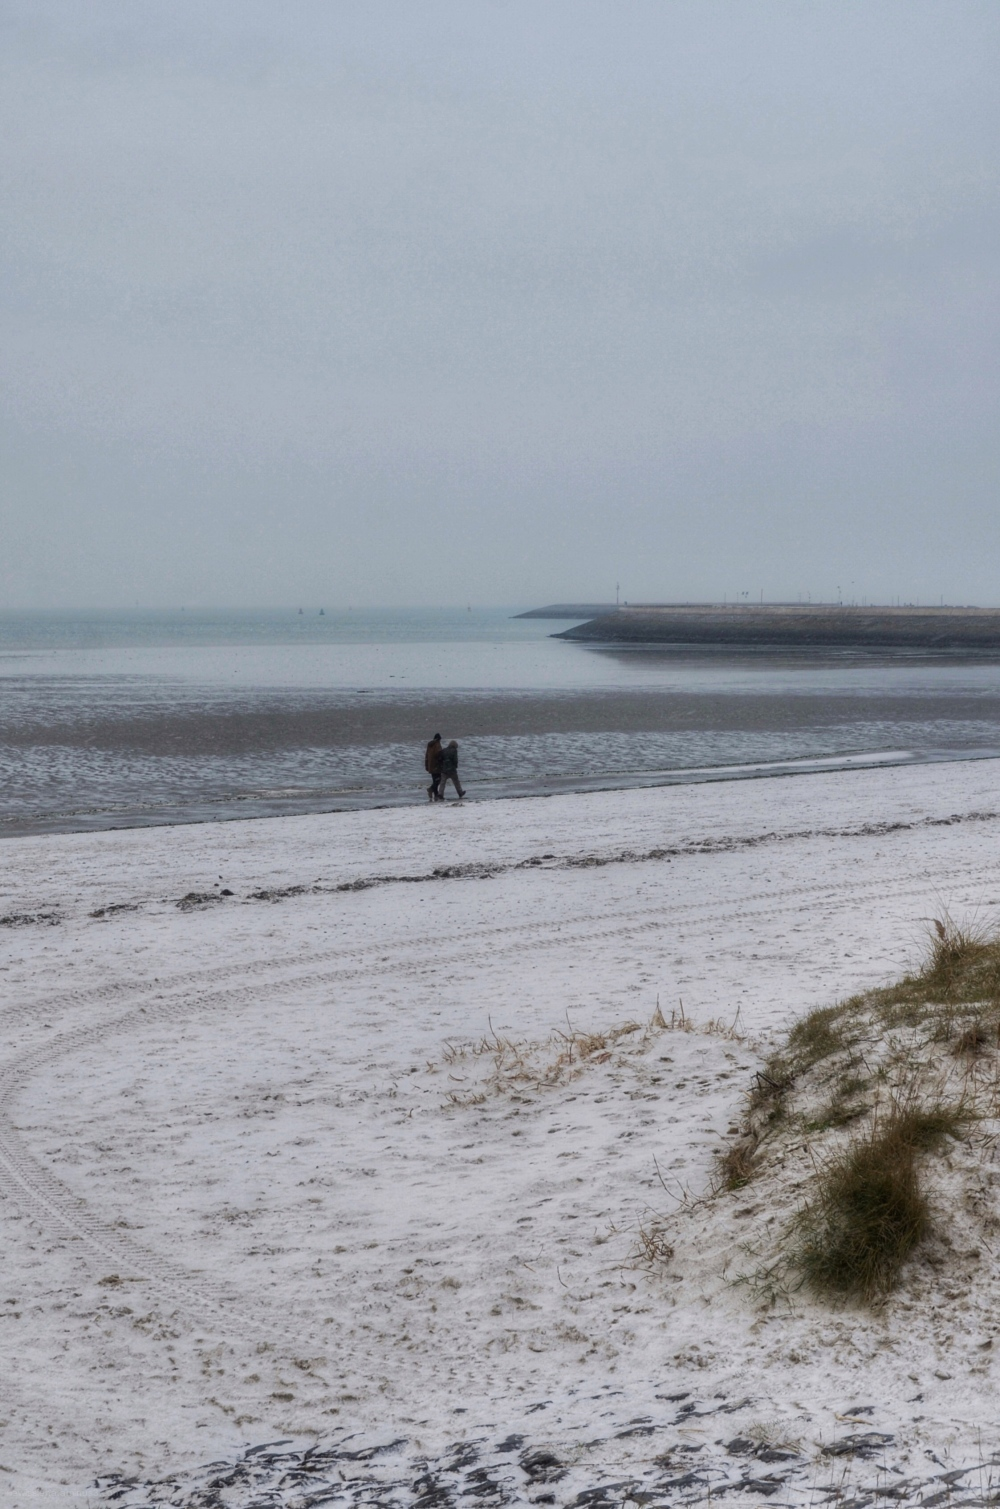 Strand harlingen beach snow